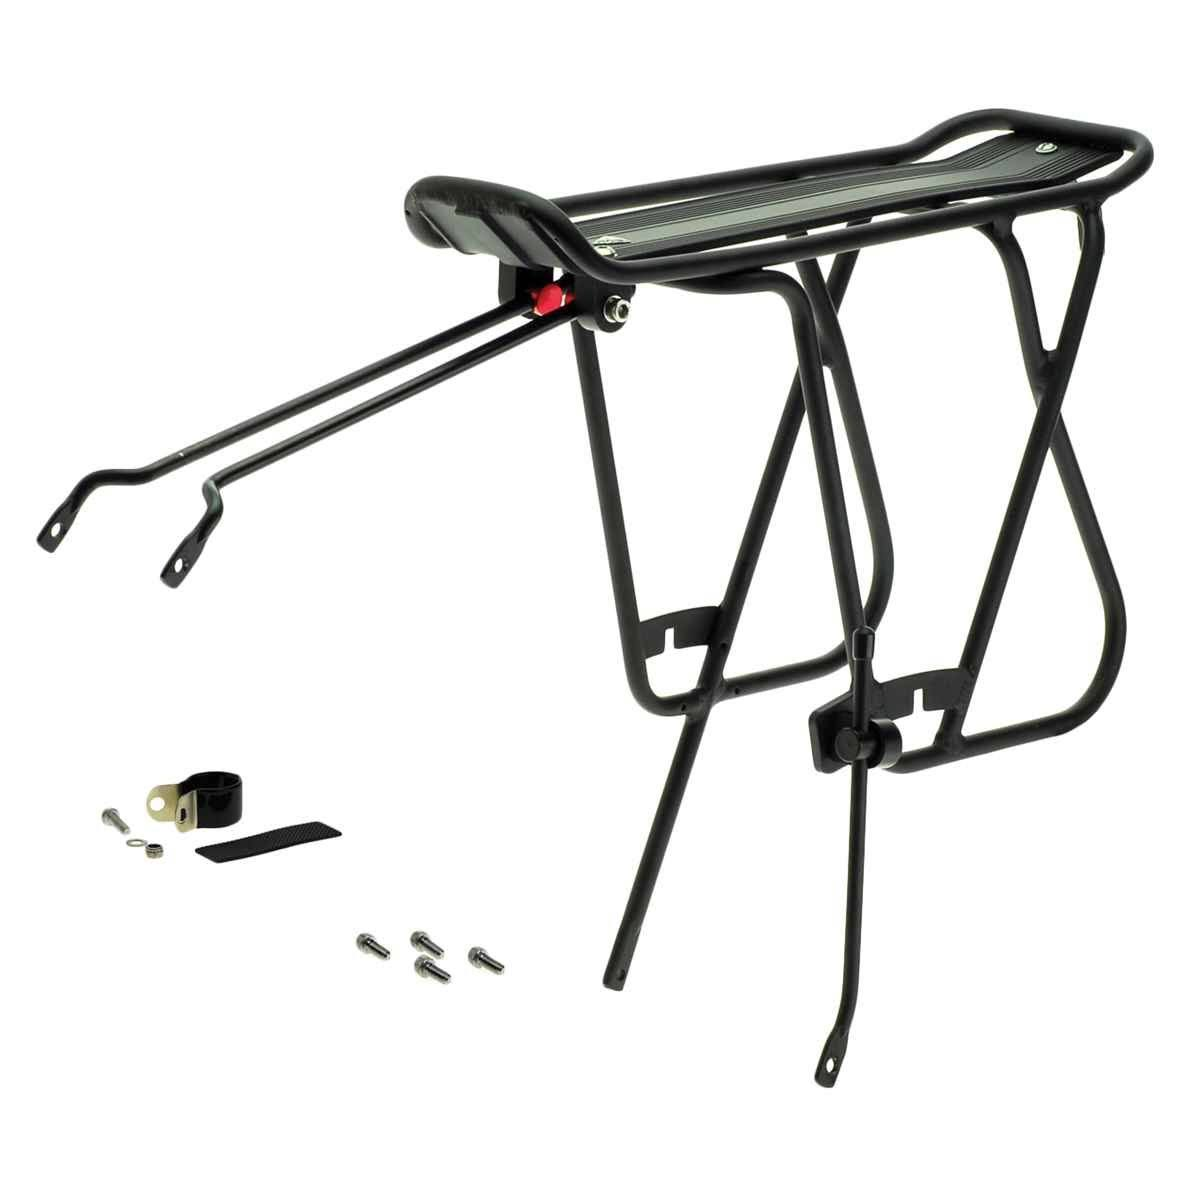 Axiom Journey Disc Brake Compatible Rear Bicycle Rack